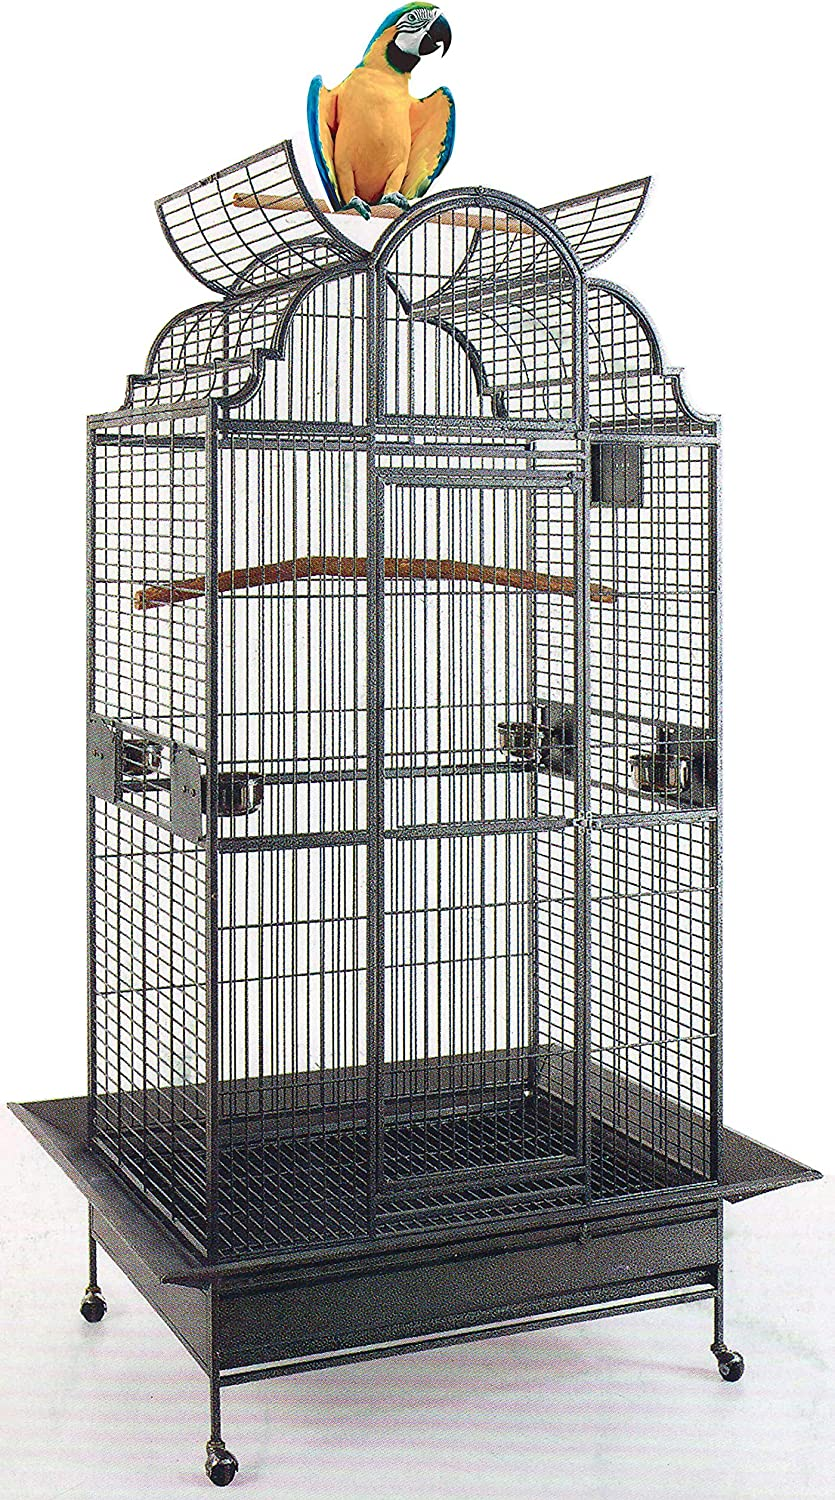 New Large Elegant Wrought Iron Special sale item Dome I Cage Bird Parrot Top Play Popular brand